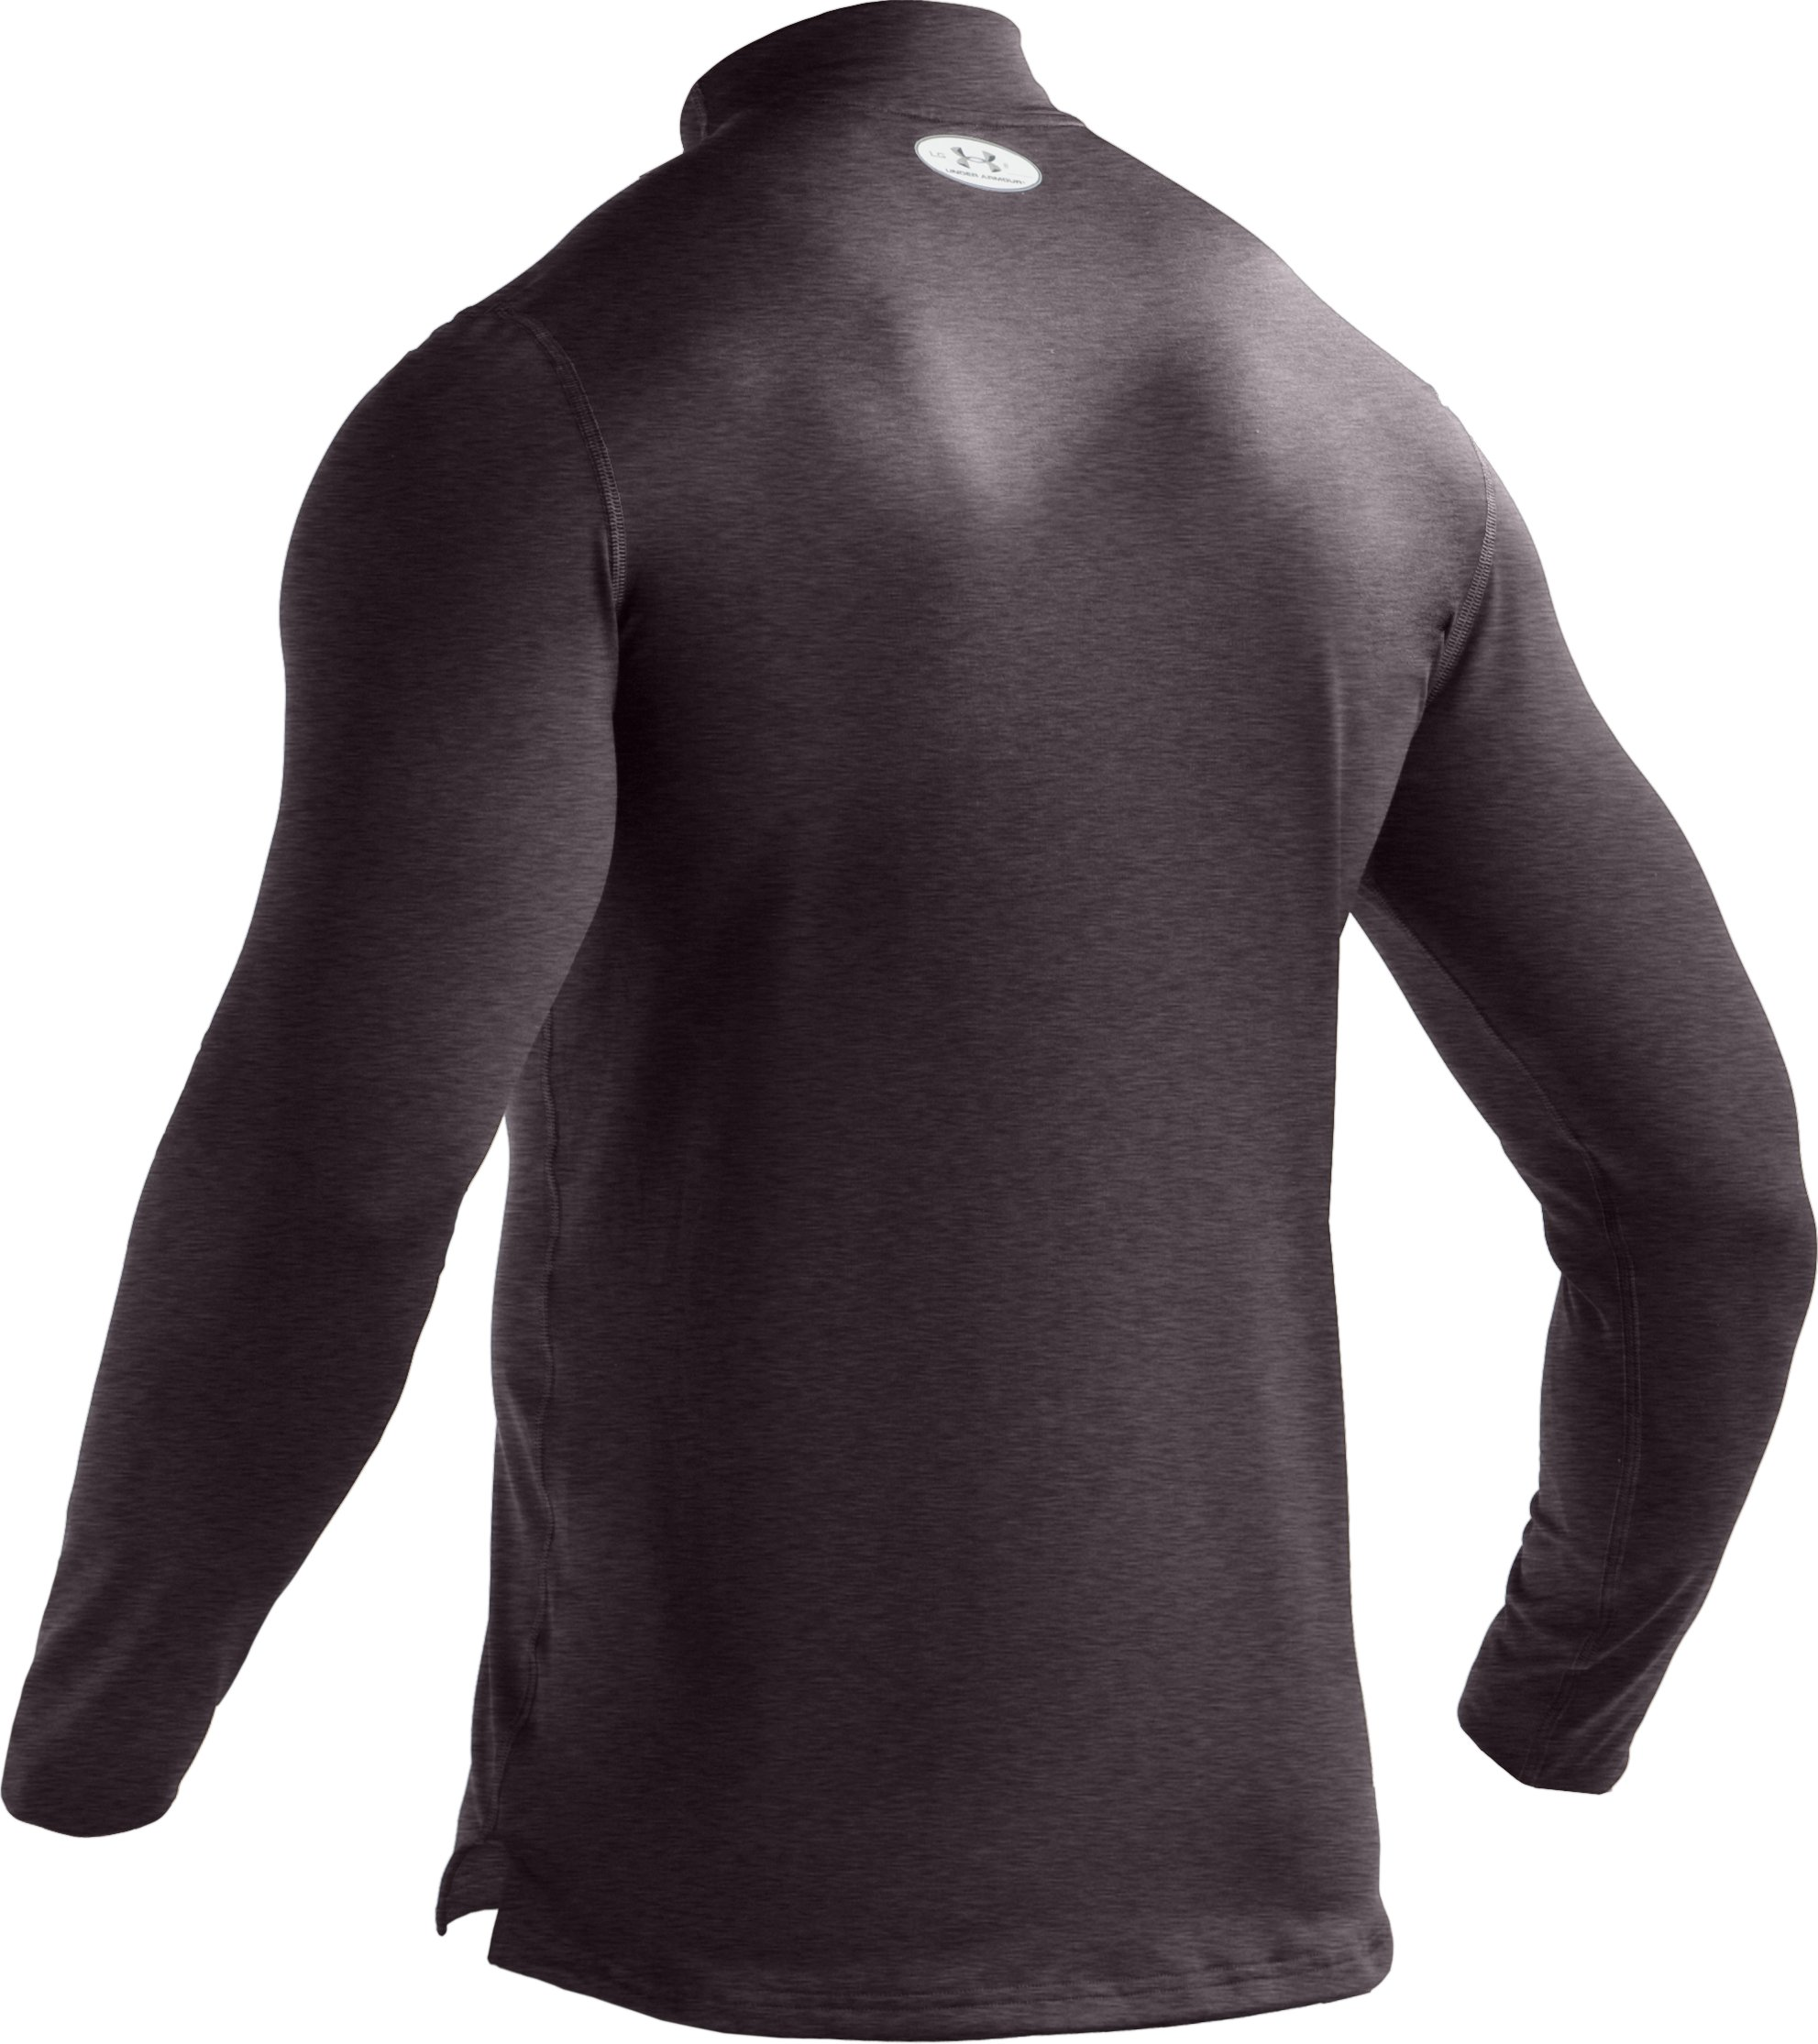 Men's ColdGear® Fitted Long Sleeve Mock, Carbon Heather, undefined